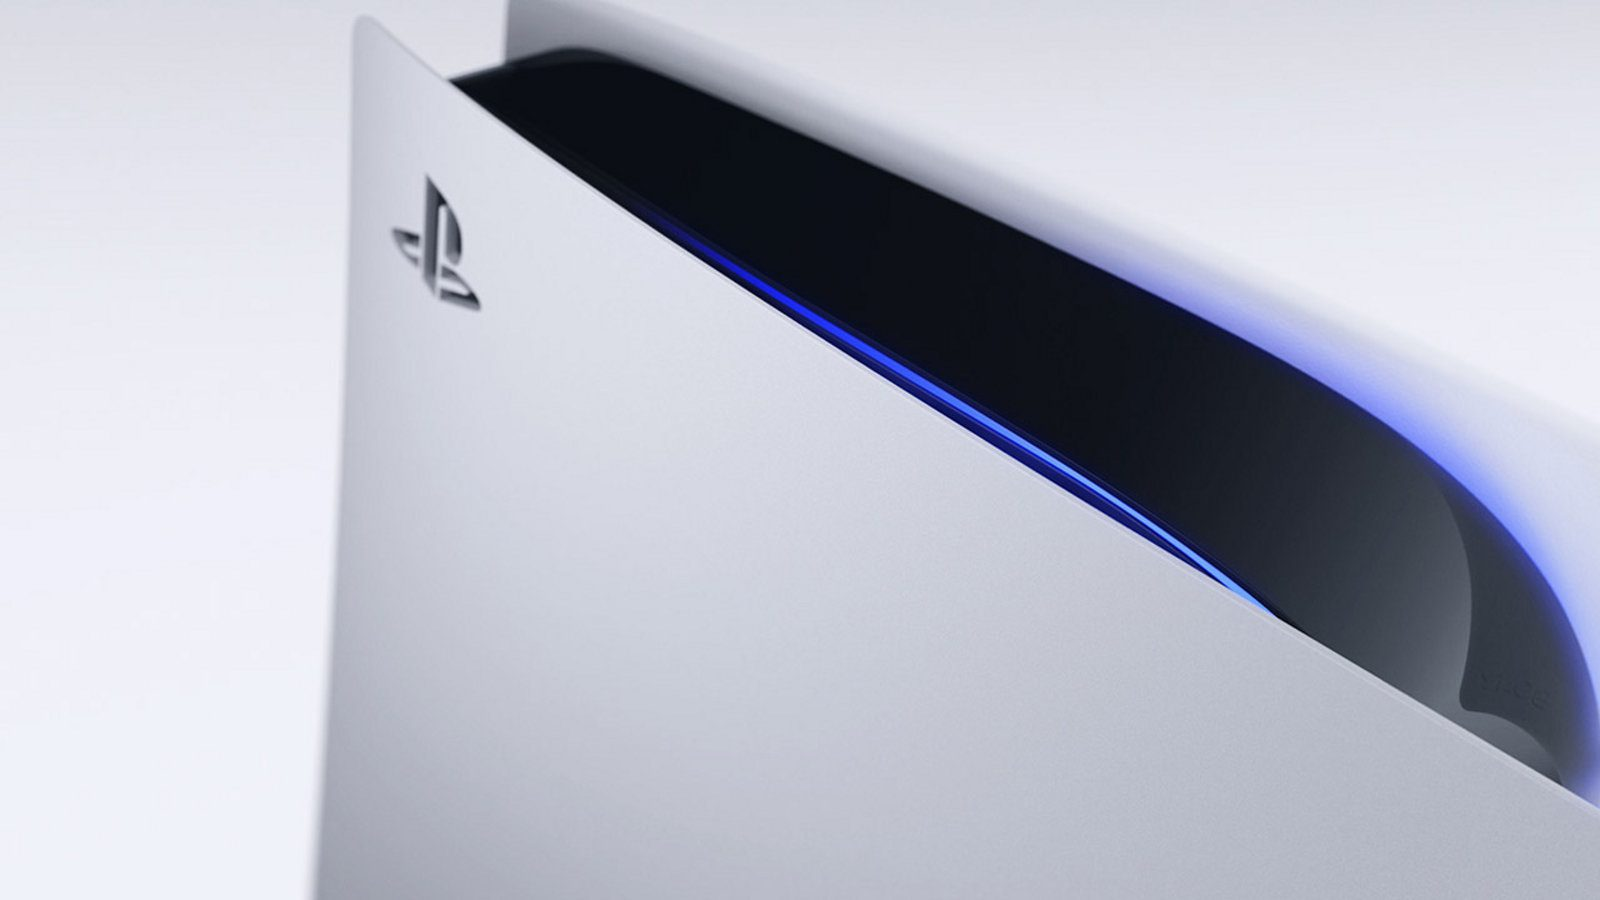 Japan Shifts 118,000 PS5 Units In Four Days